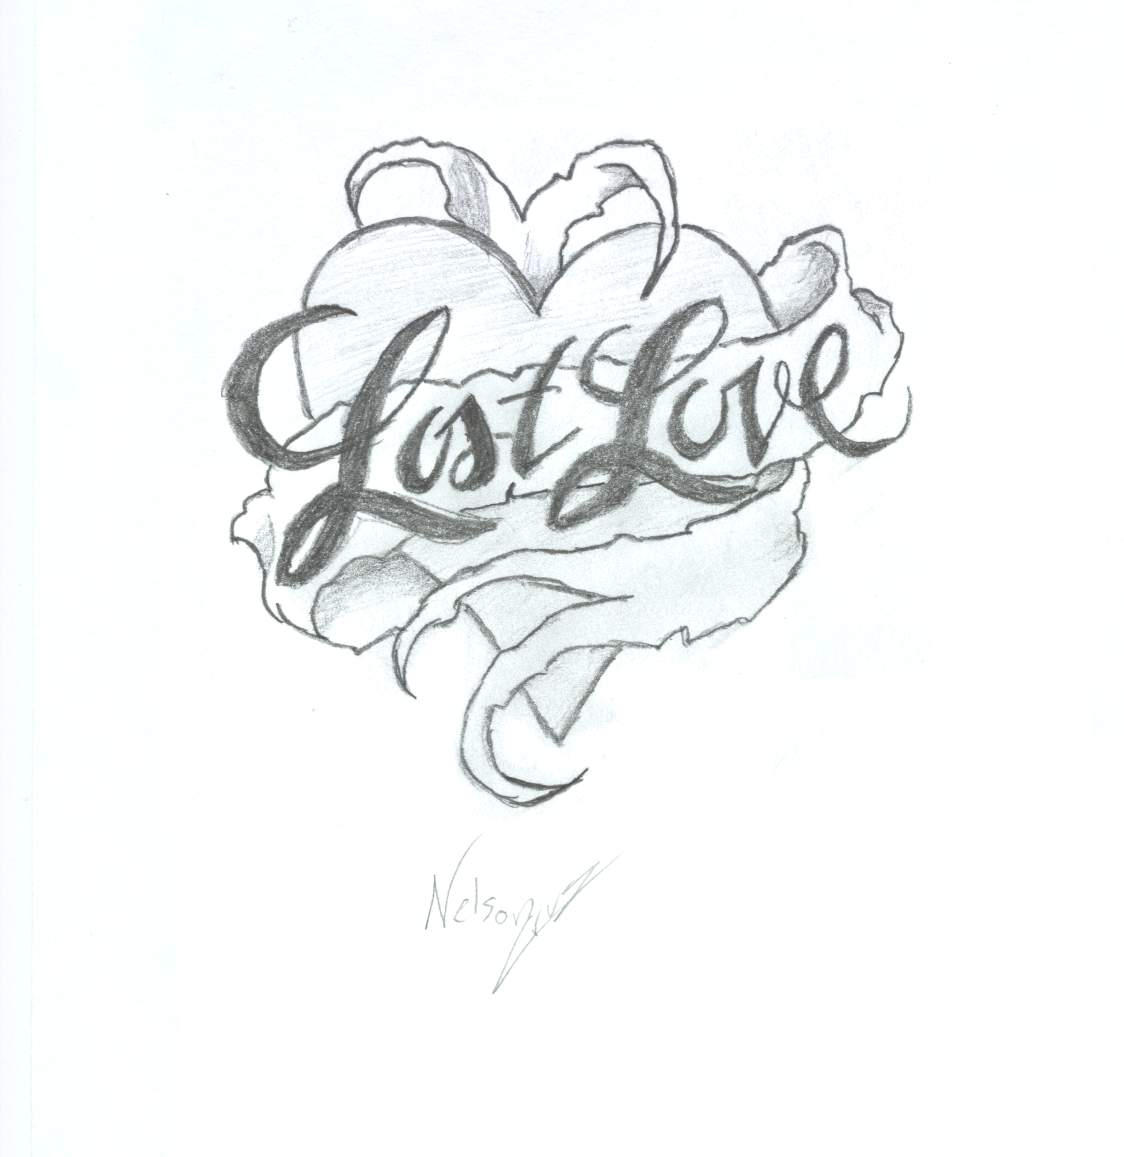 Lost love heart by cheshire-luso on DeviantArt